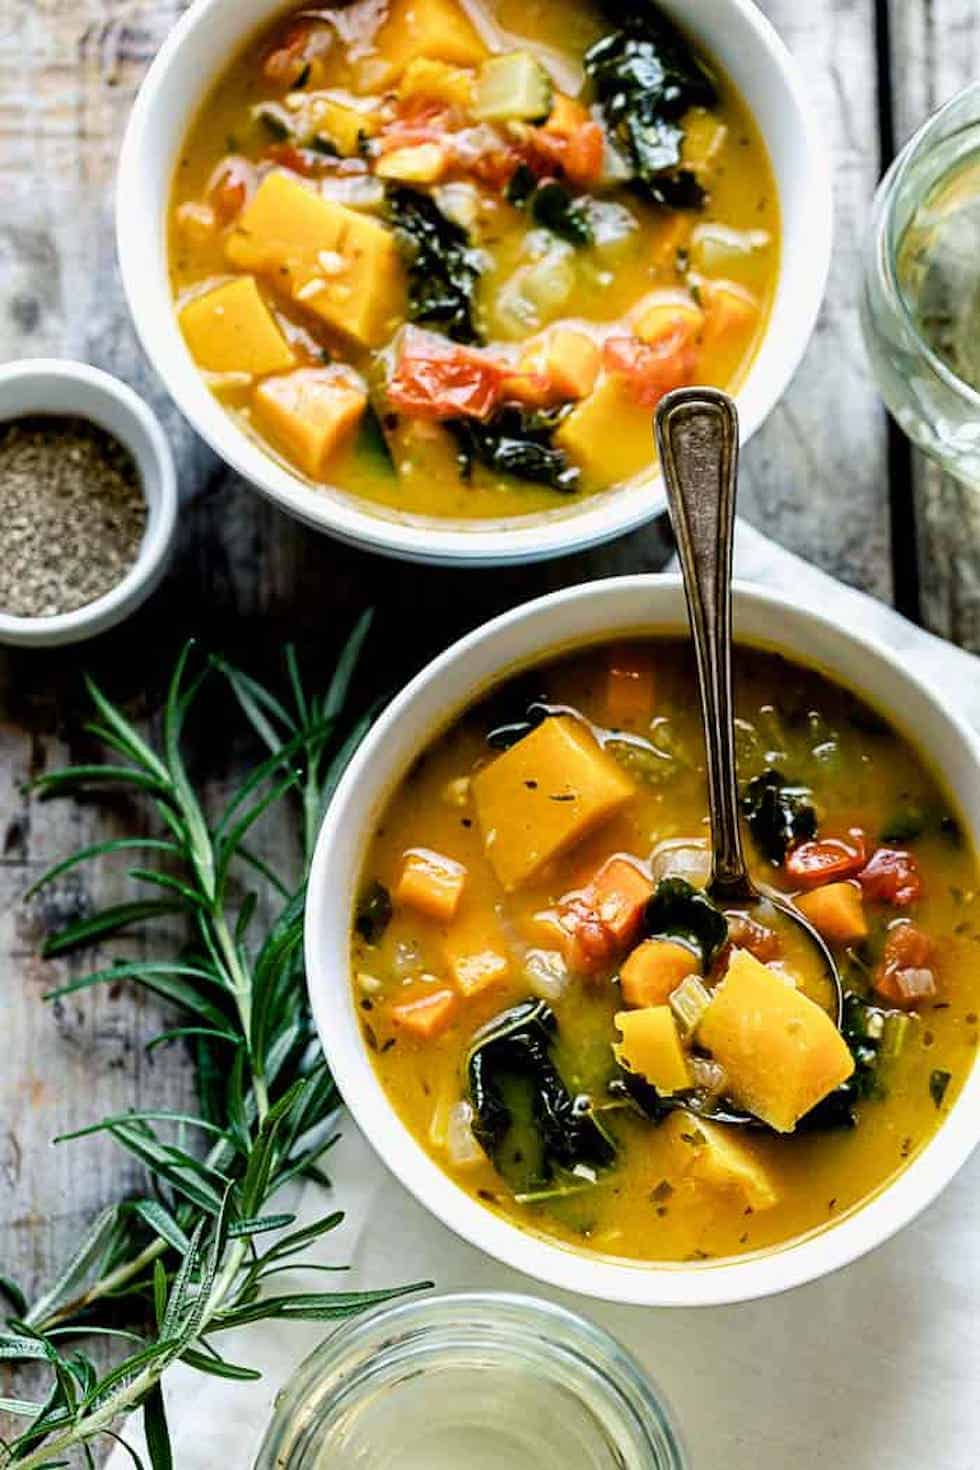 Vegan soup recipes, including vegetable soup in white bowls with rosemary.